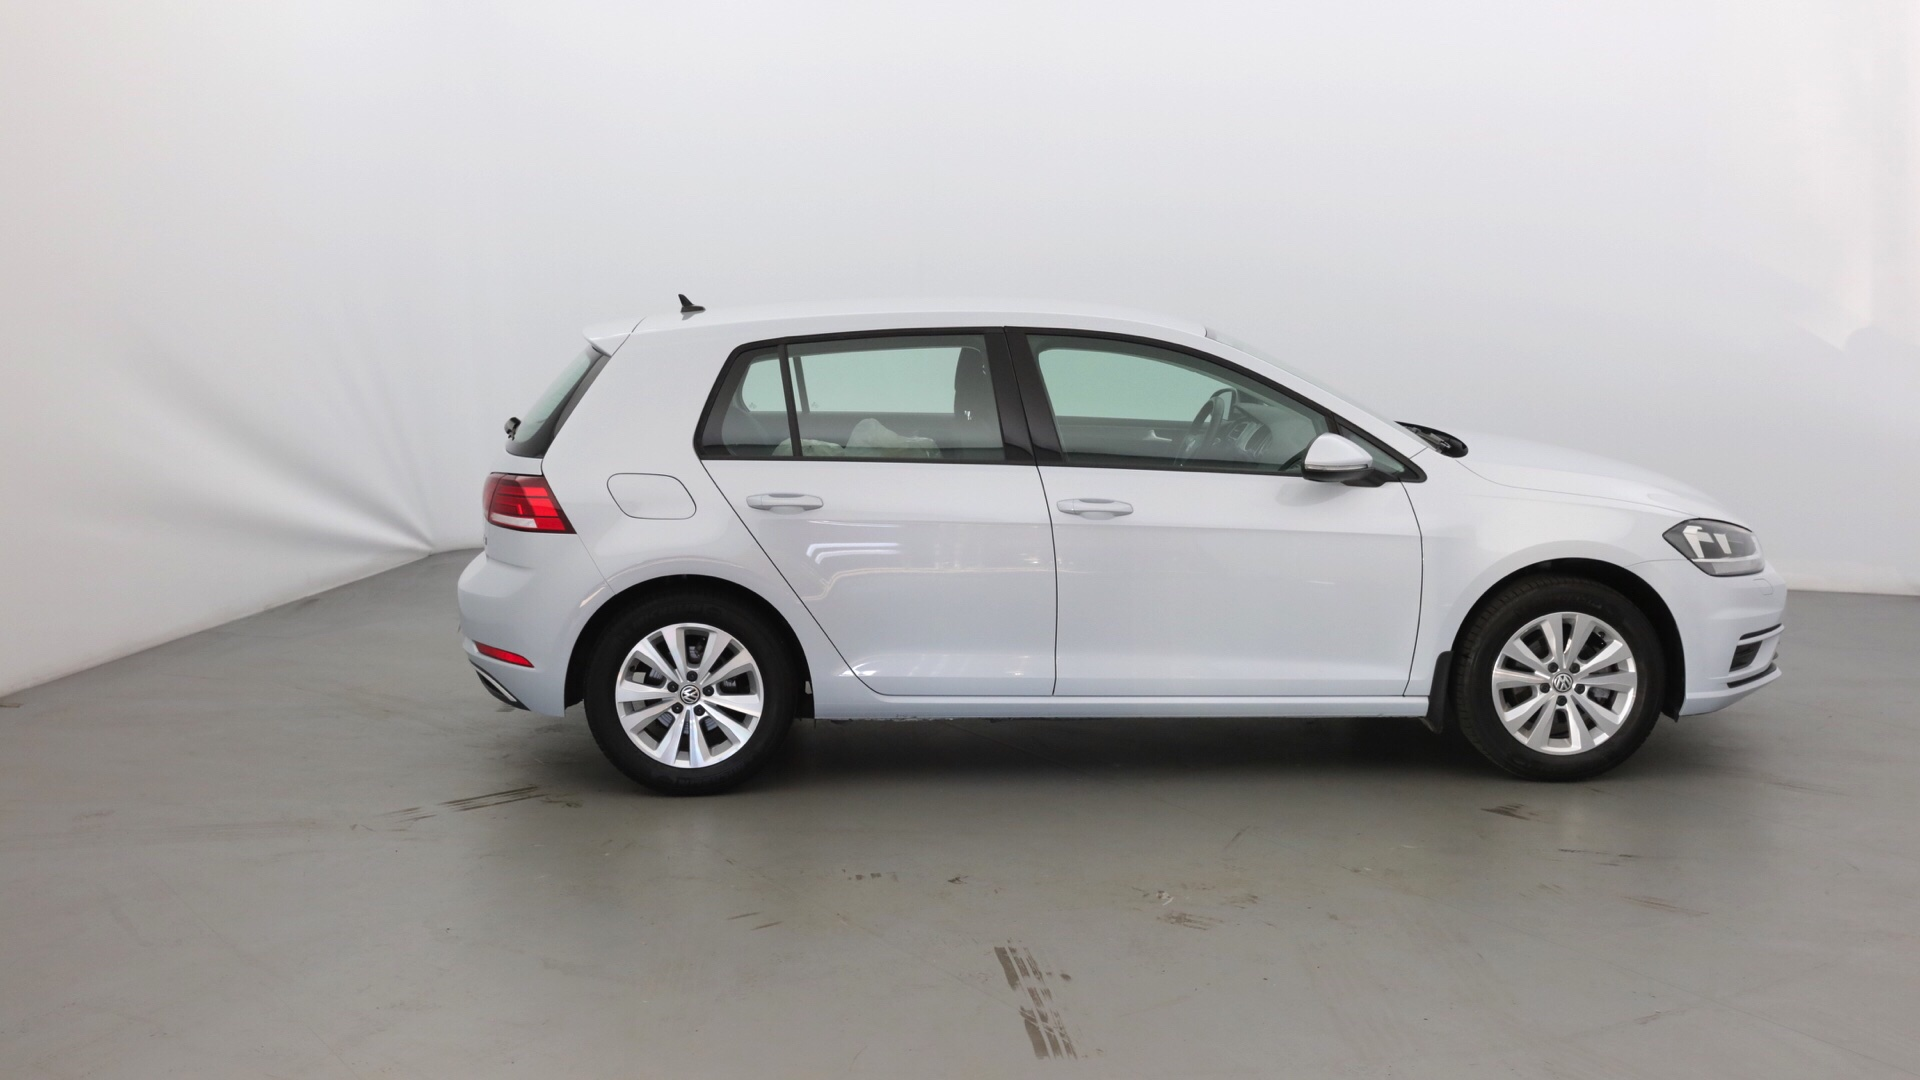 VOLKSWAGEN GOLF 1.0 TSI 110CH BLUEMOTION TECHNOLOGY TRENDLINE 5P - Miniature 4